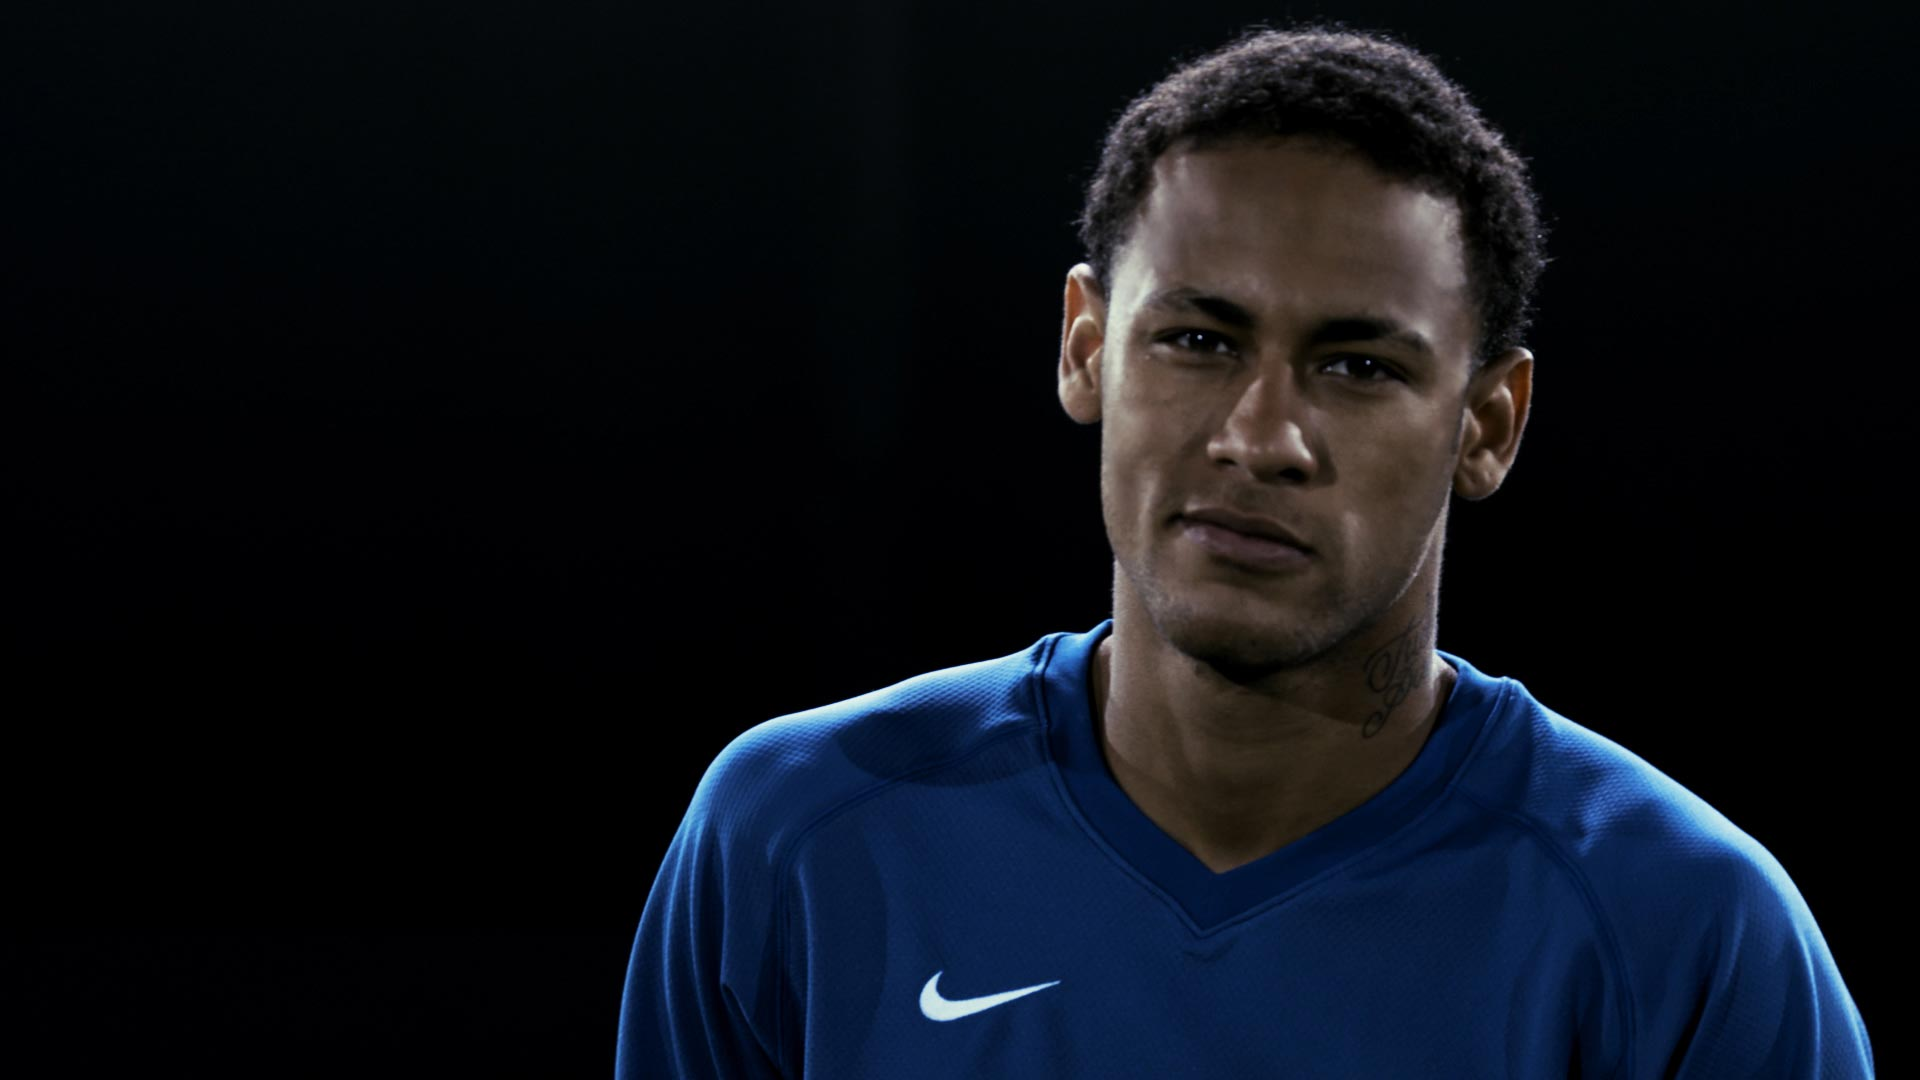 Panasonic x Neymar Jr